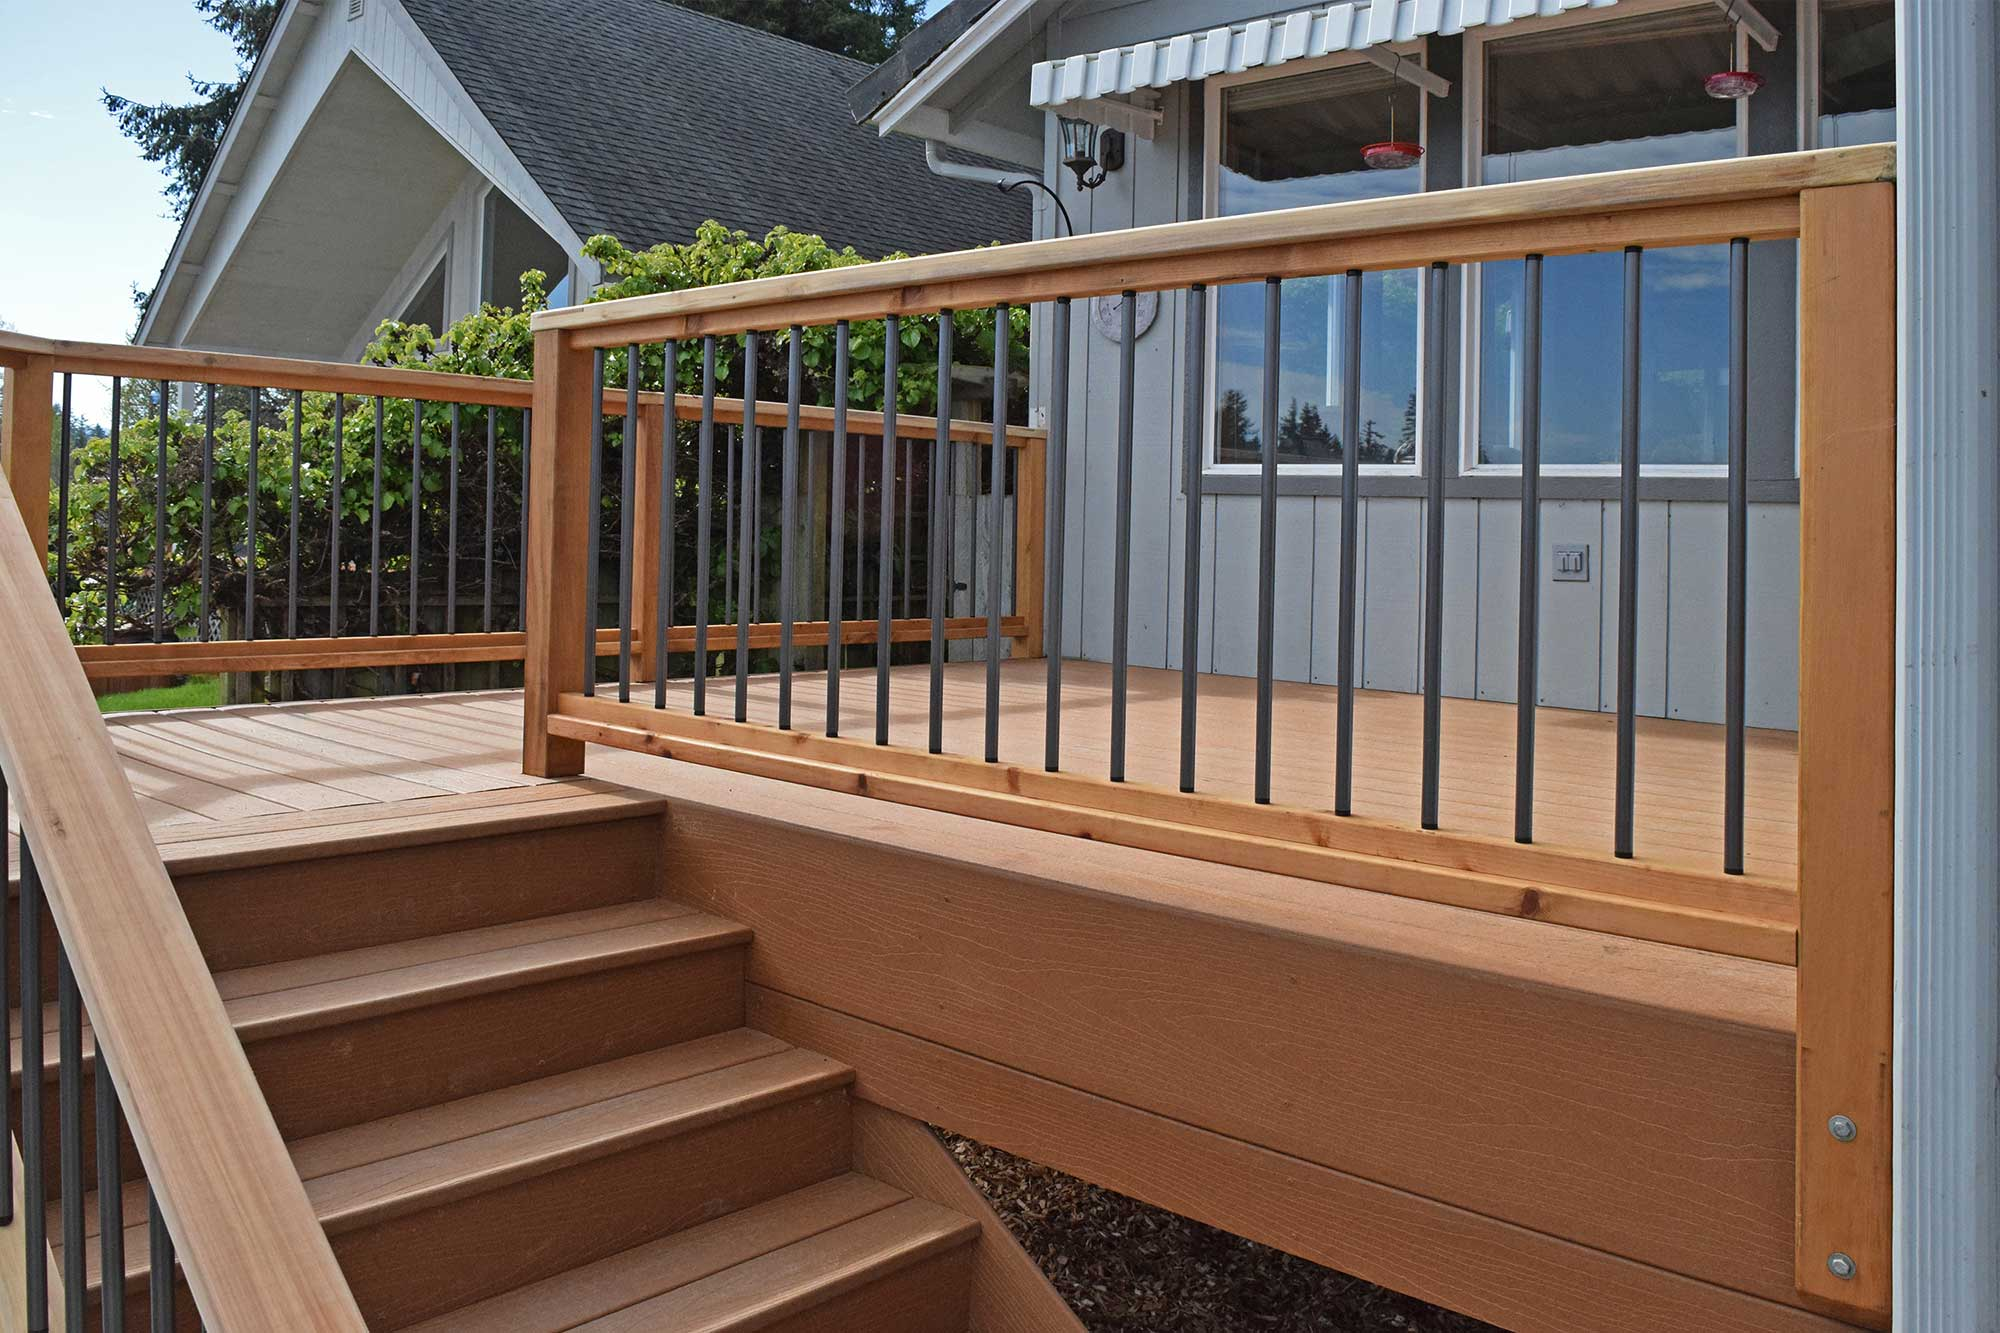 Composite decking material installation near yelm ajb for Building a composite deck